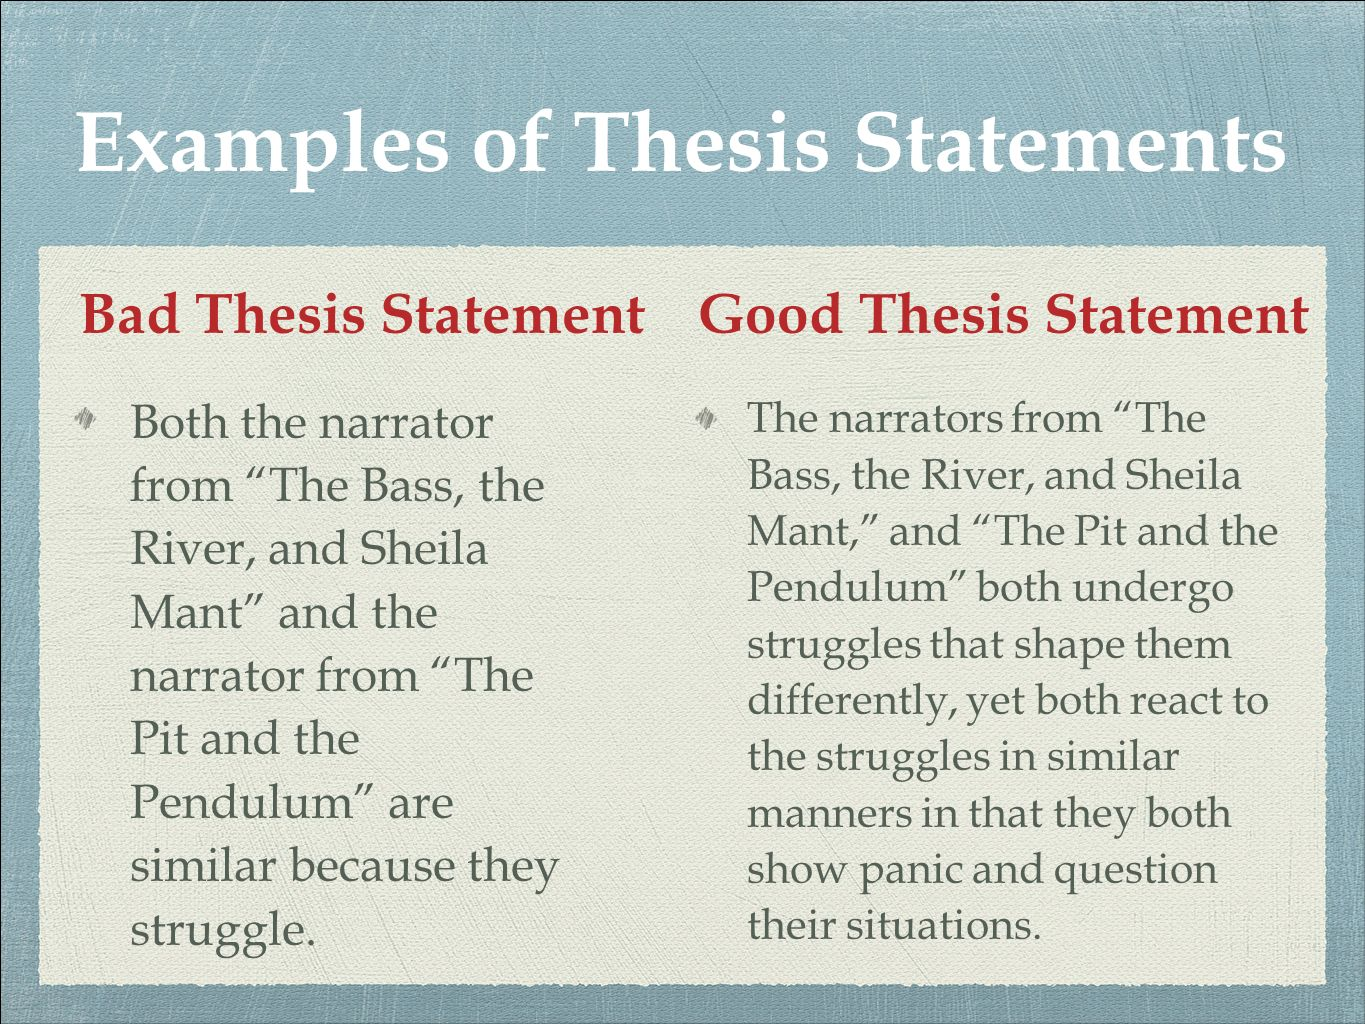 thesis good and bad Looking for some free examples of thesis statements this article contains compares several good and bad examples, as well as a checklist of traps that writers might fall into while crafting their own statement.